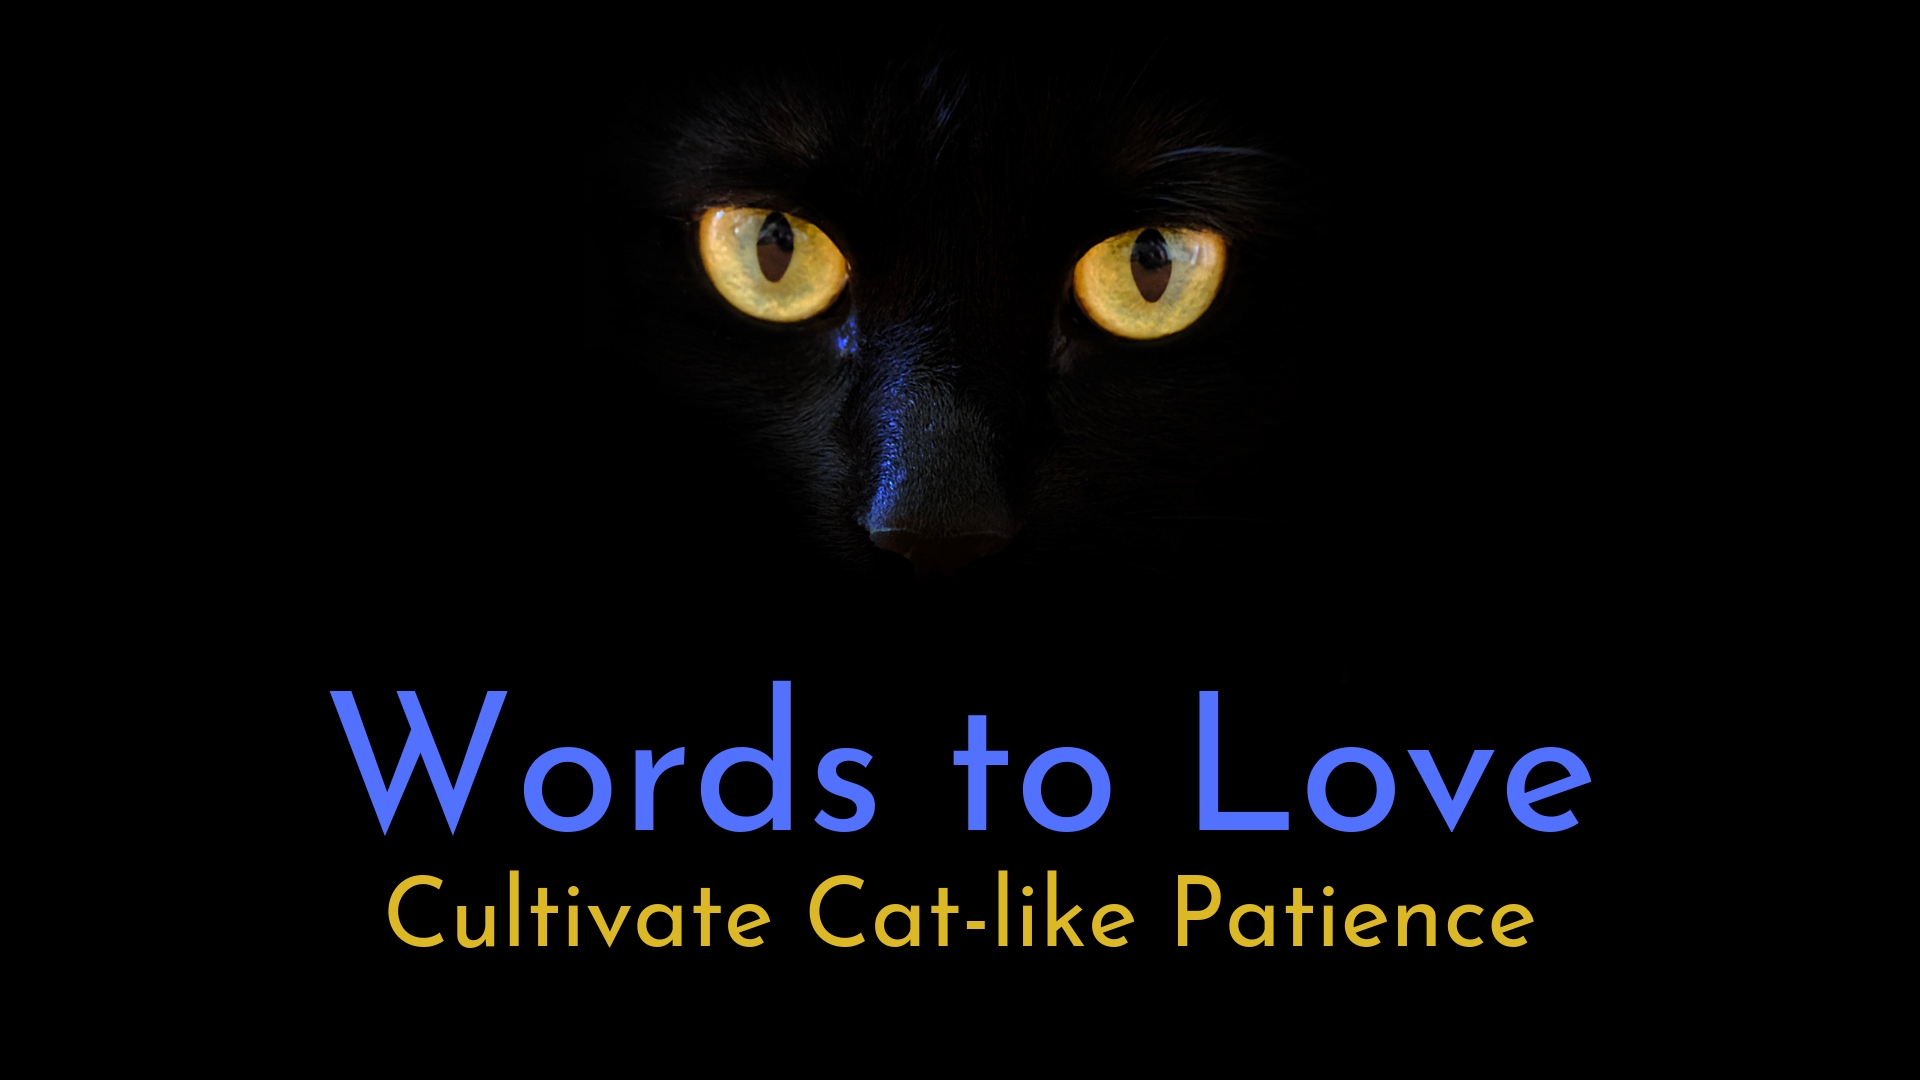 banner-words-to-love-cultivate-catlike-patience-01.jpg